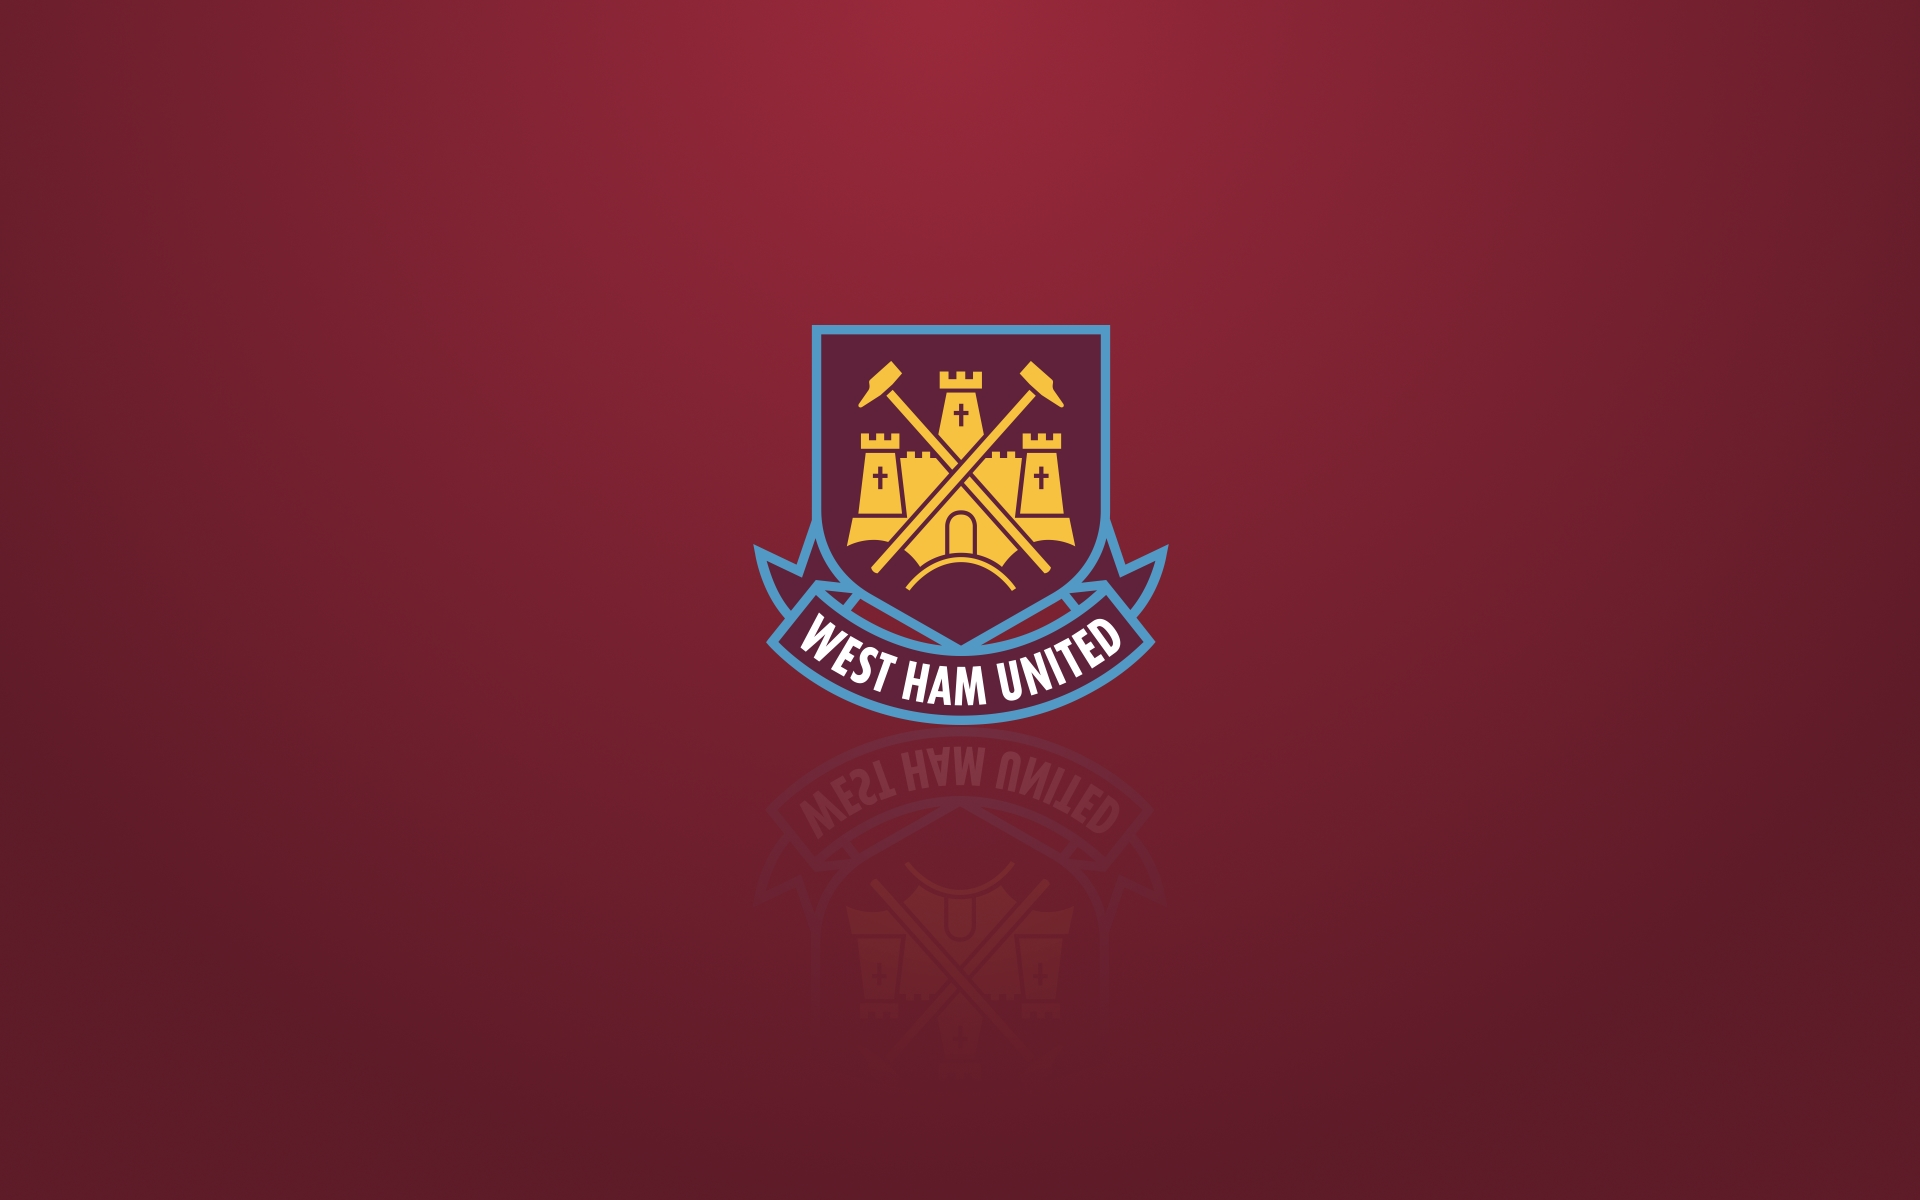 West_Ham_United_wallpaper_with_logo_1920x1200.jpg